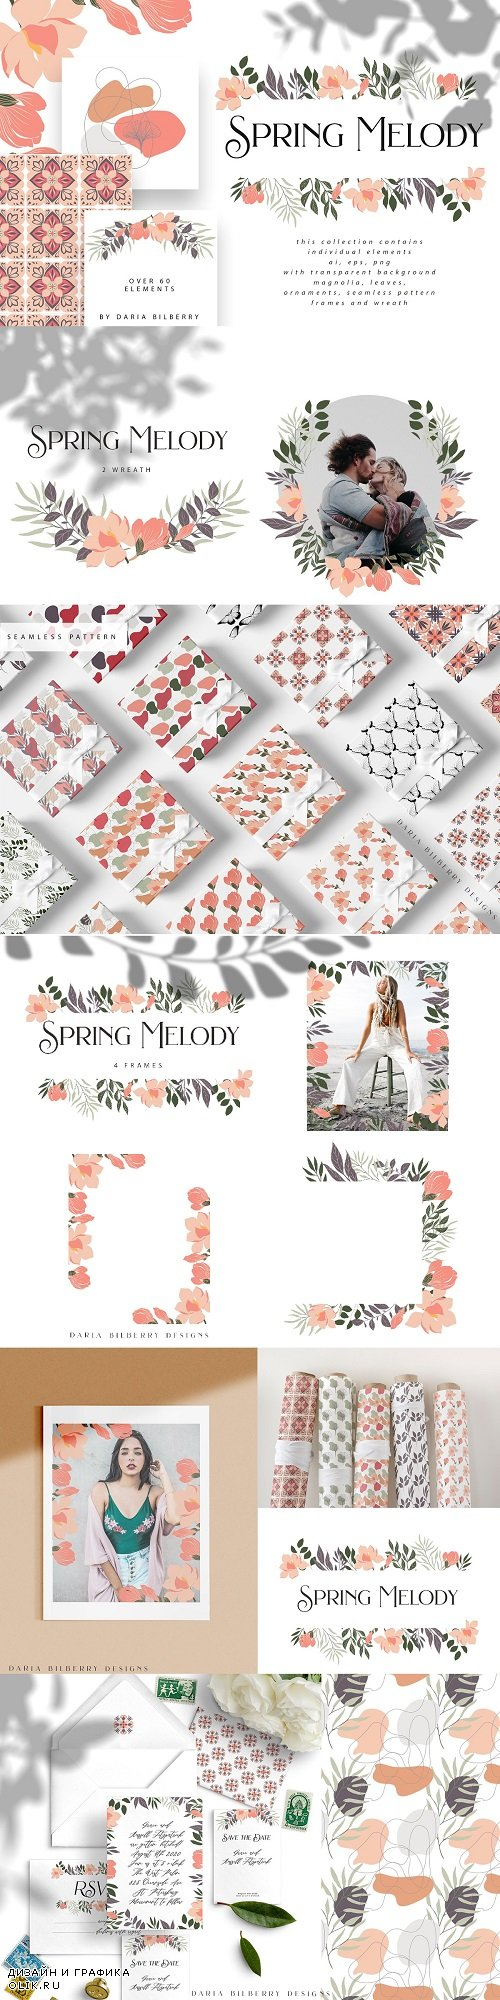 Spring Melody collection - 3653863